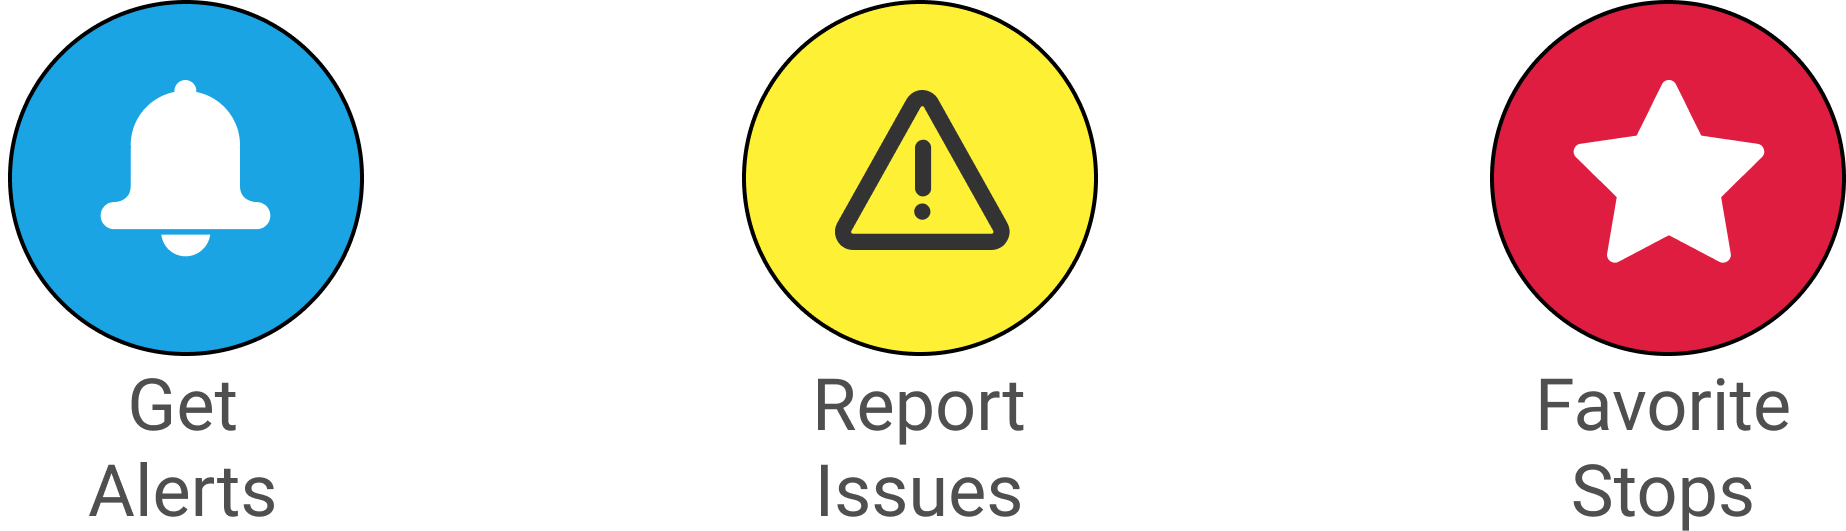 Features - Get Alerts, Report Issues, and Favorite Stops